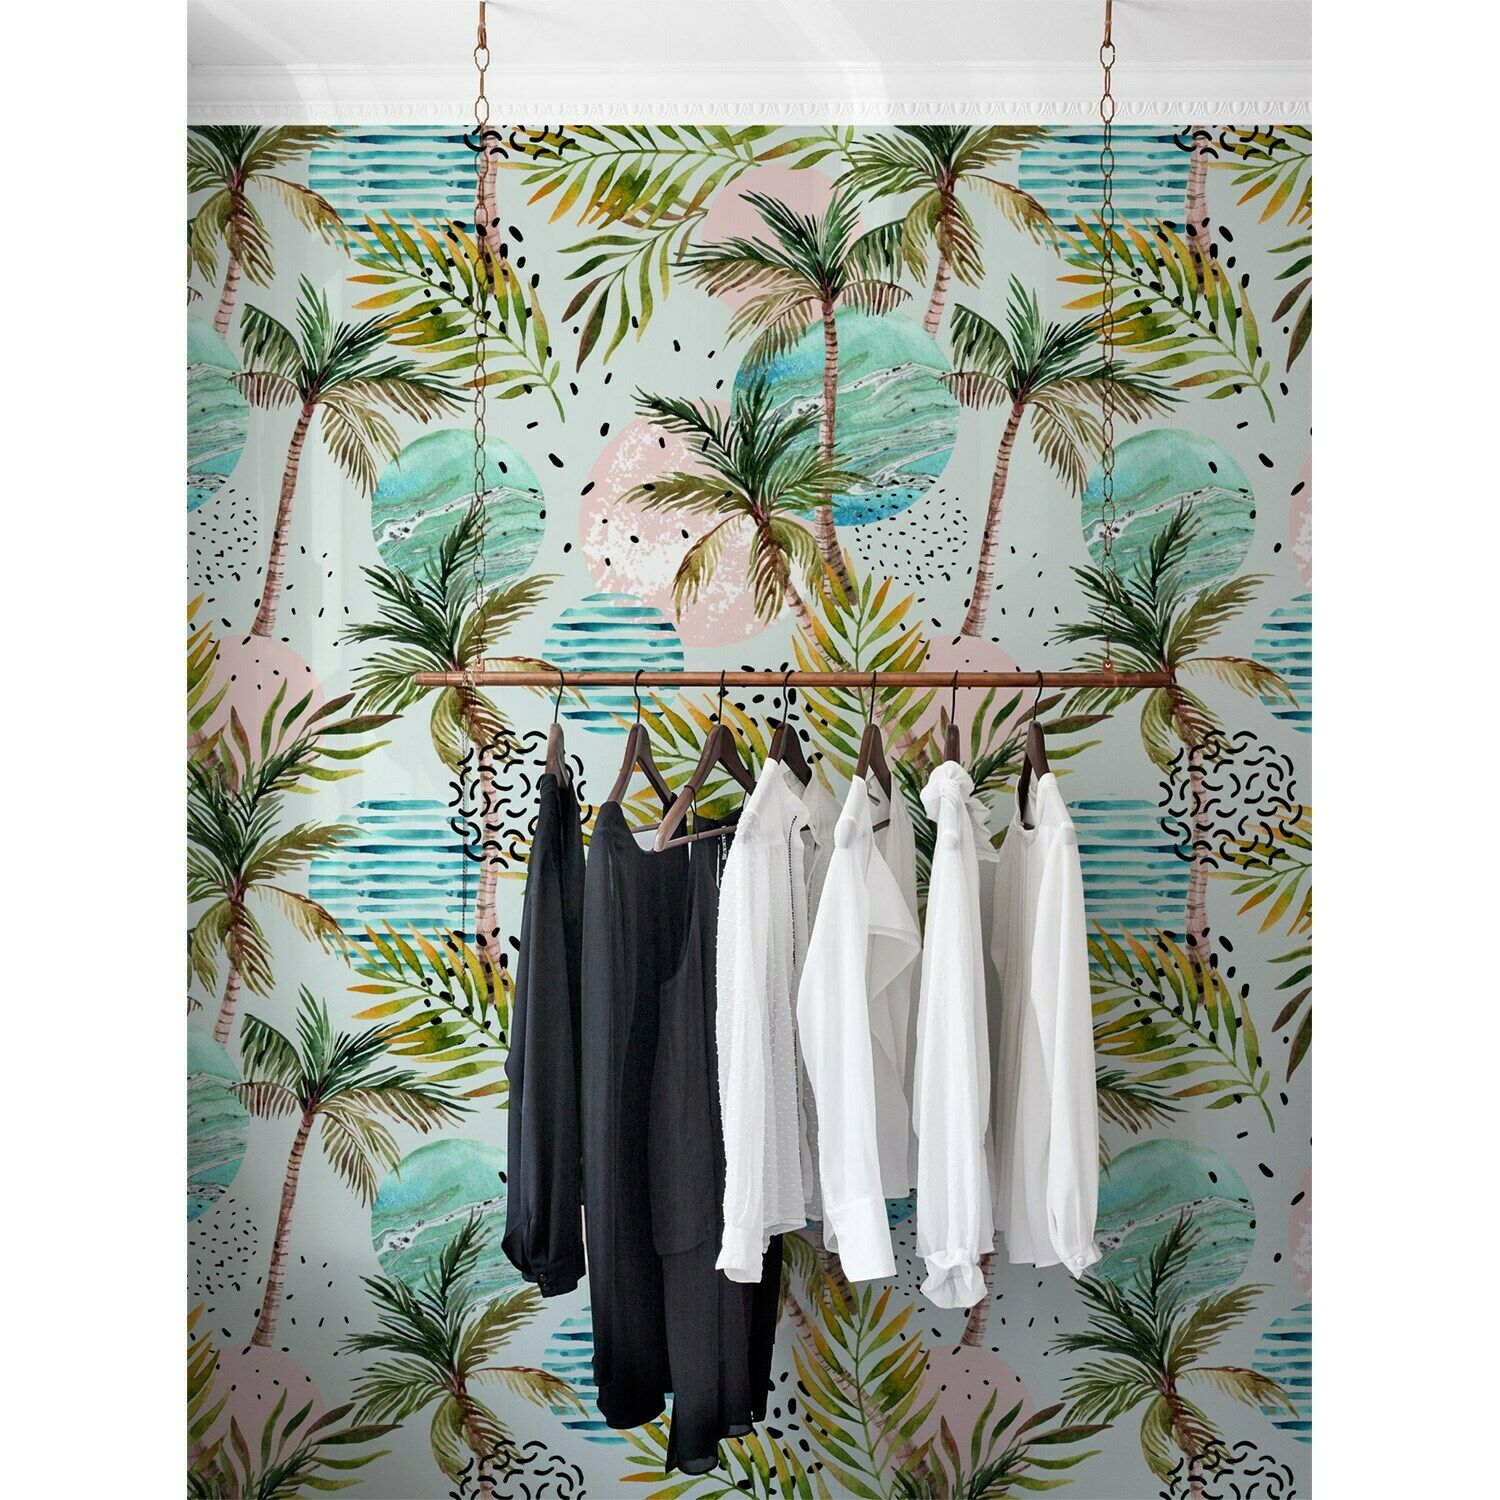 Holiday WaterFarbe Palms Non-Woven wallpaper waterFarbe abstract painting Mural